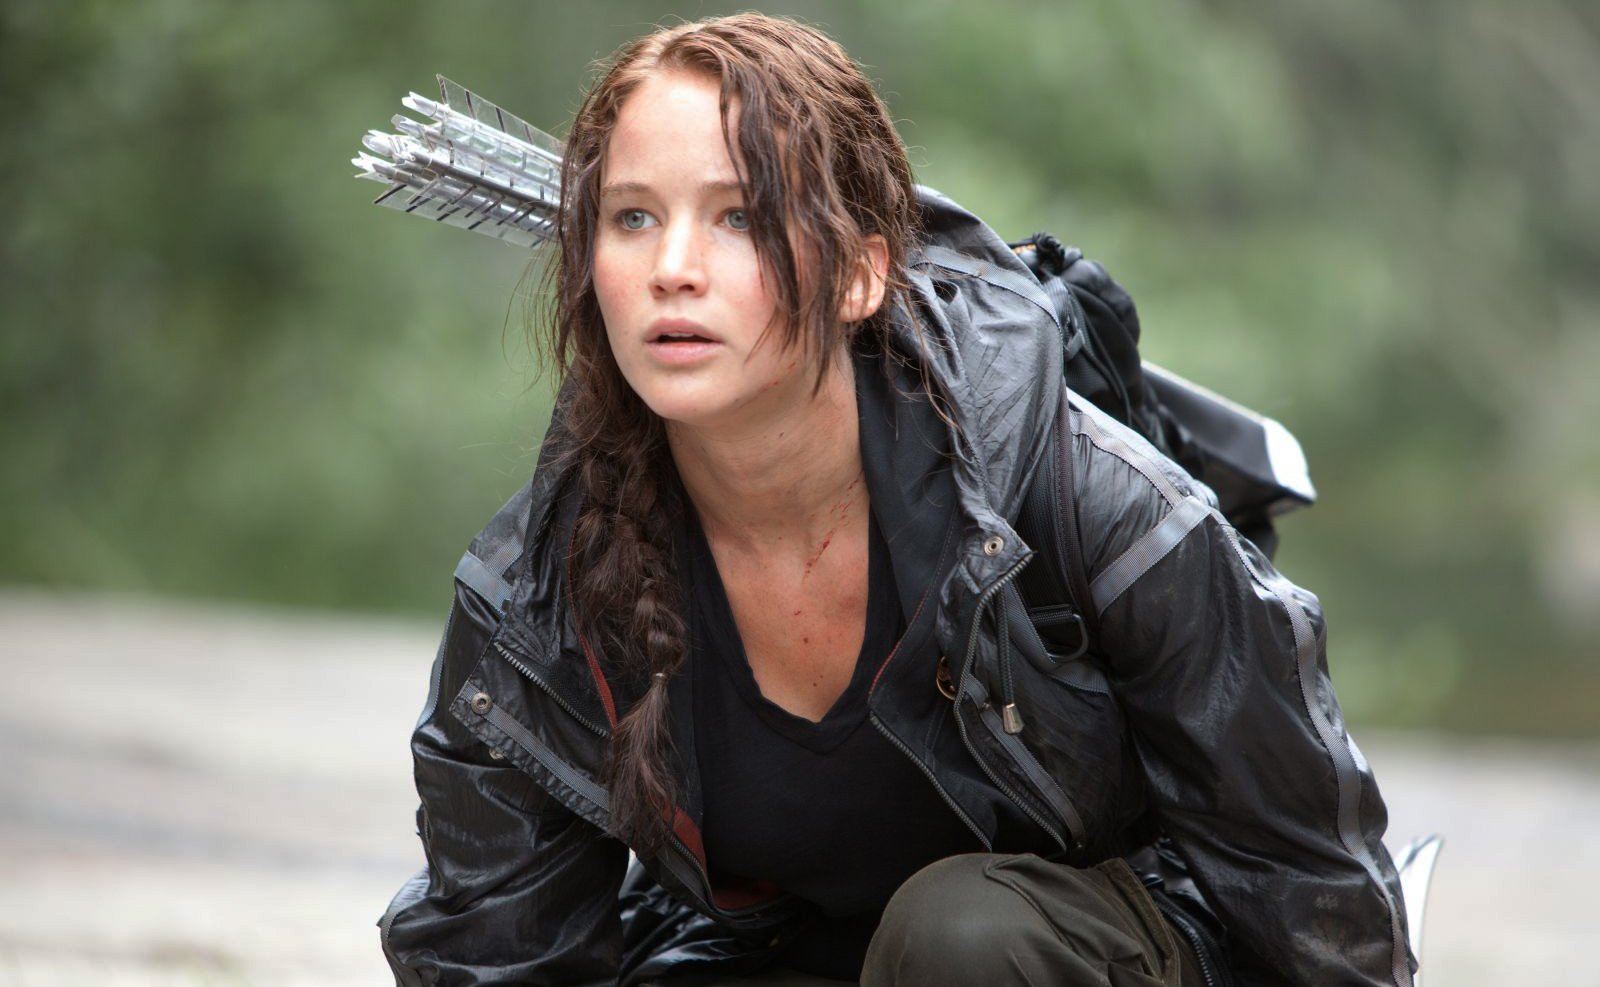 G3 Review: The Hunger Games | Girls Gone Geek